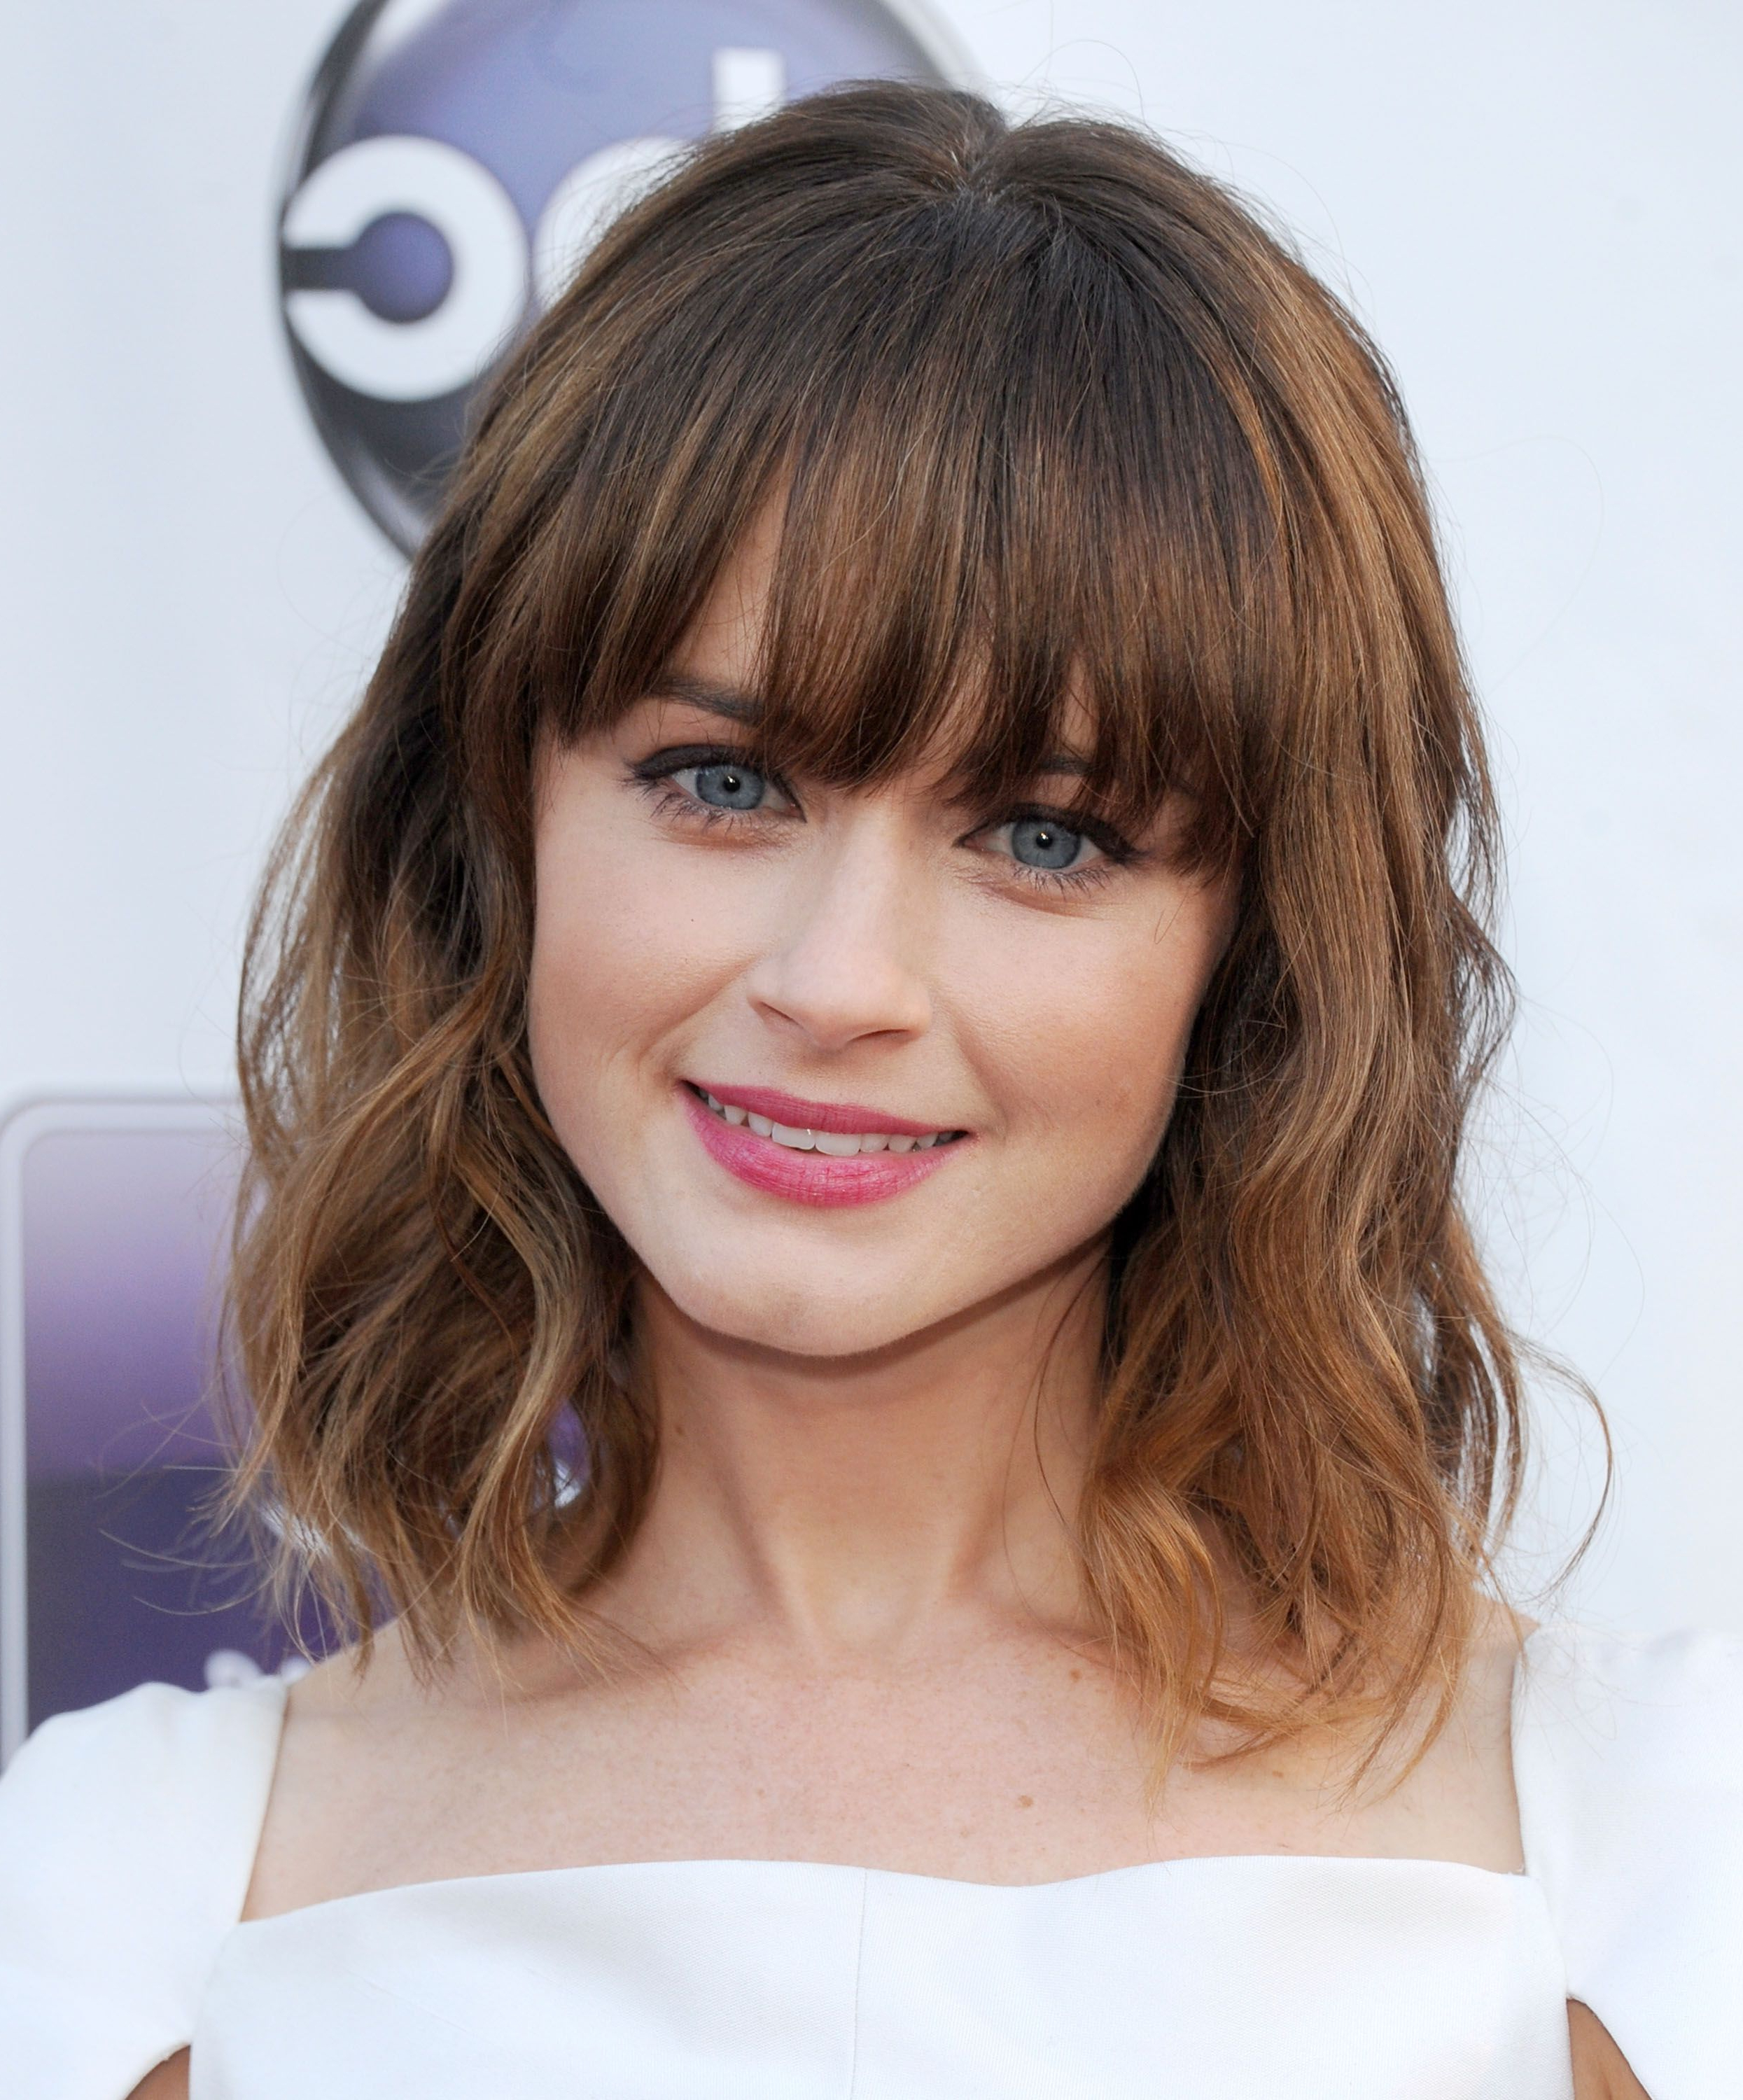 35 Best Hairstyles With Bangs – Photos Of Celebrity Haircuts Throughout Well Known Soft And Casual Curls Hairstyles With Front Fringes (Gallery 6 of 20)